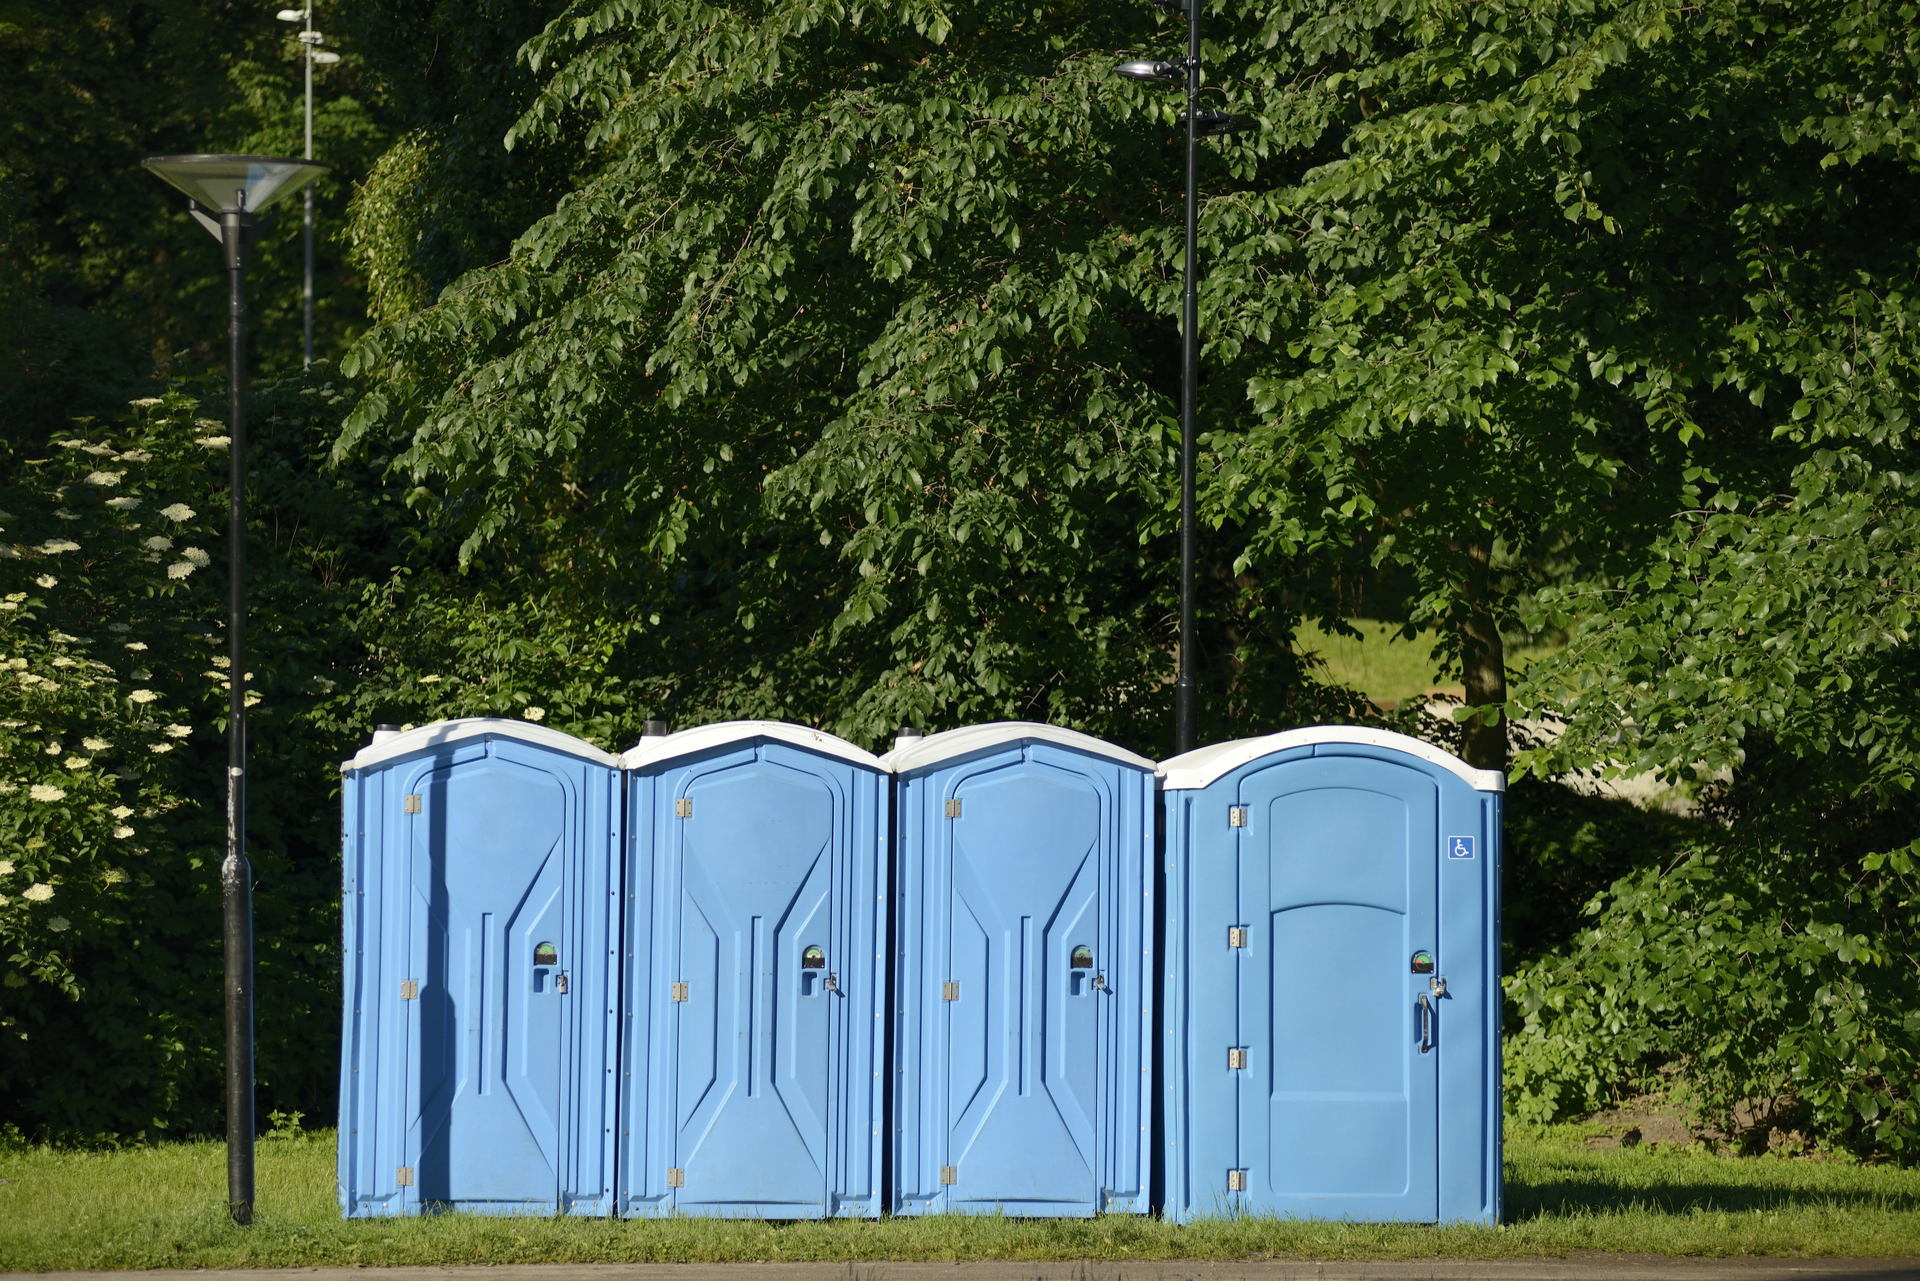 Porta-Potty Rentals For Event In North Texas